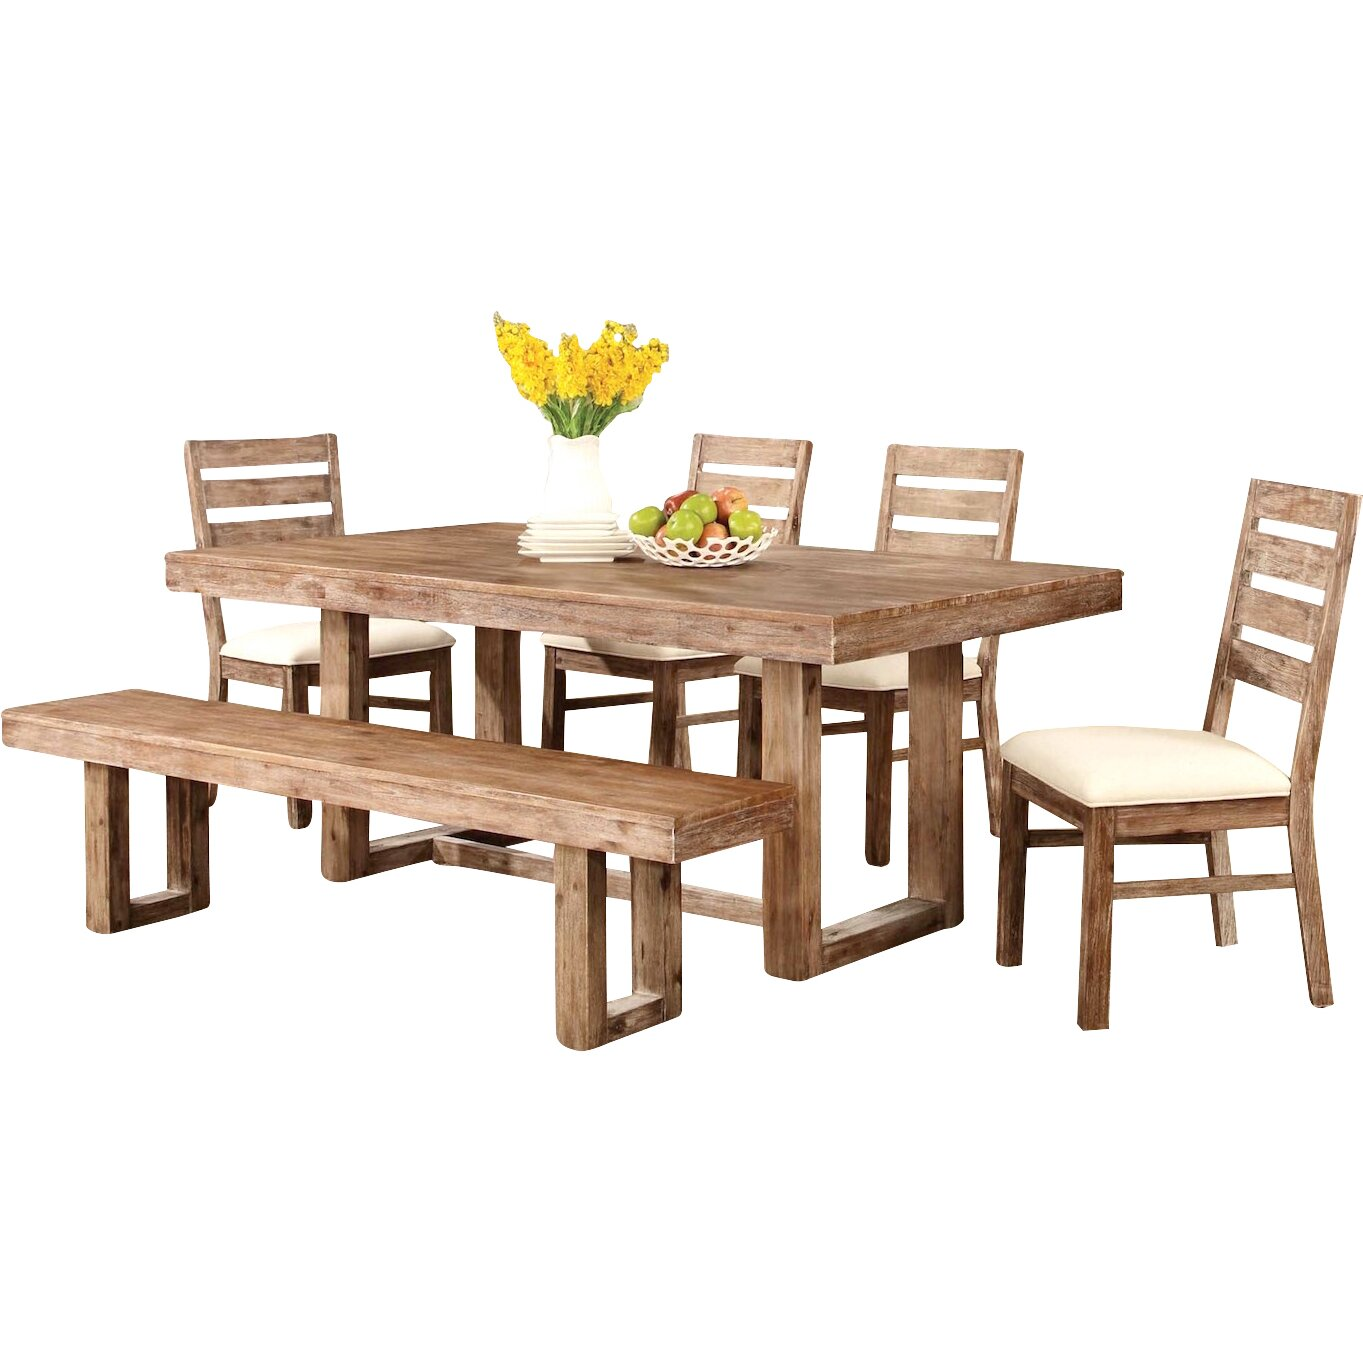 Infini furnishings underwood 6 piece dining set reviews for Dining room sets 6 piece